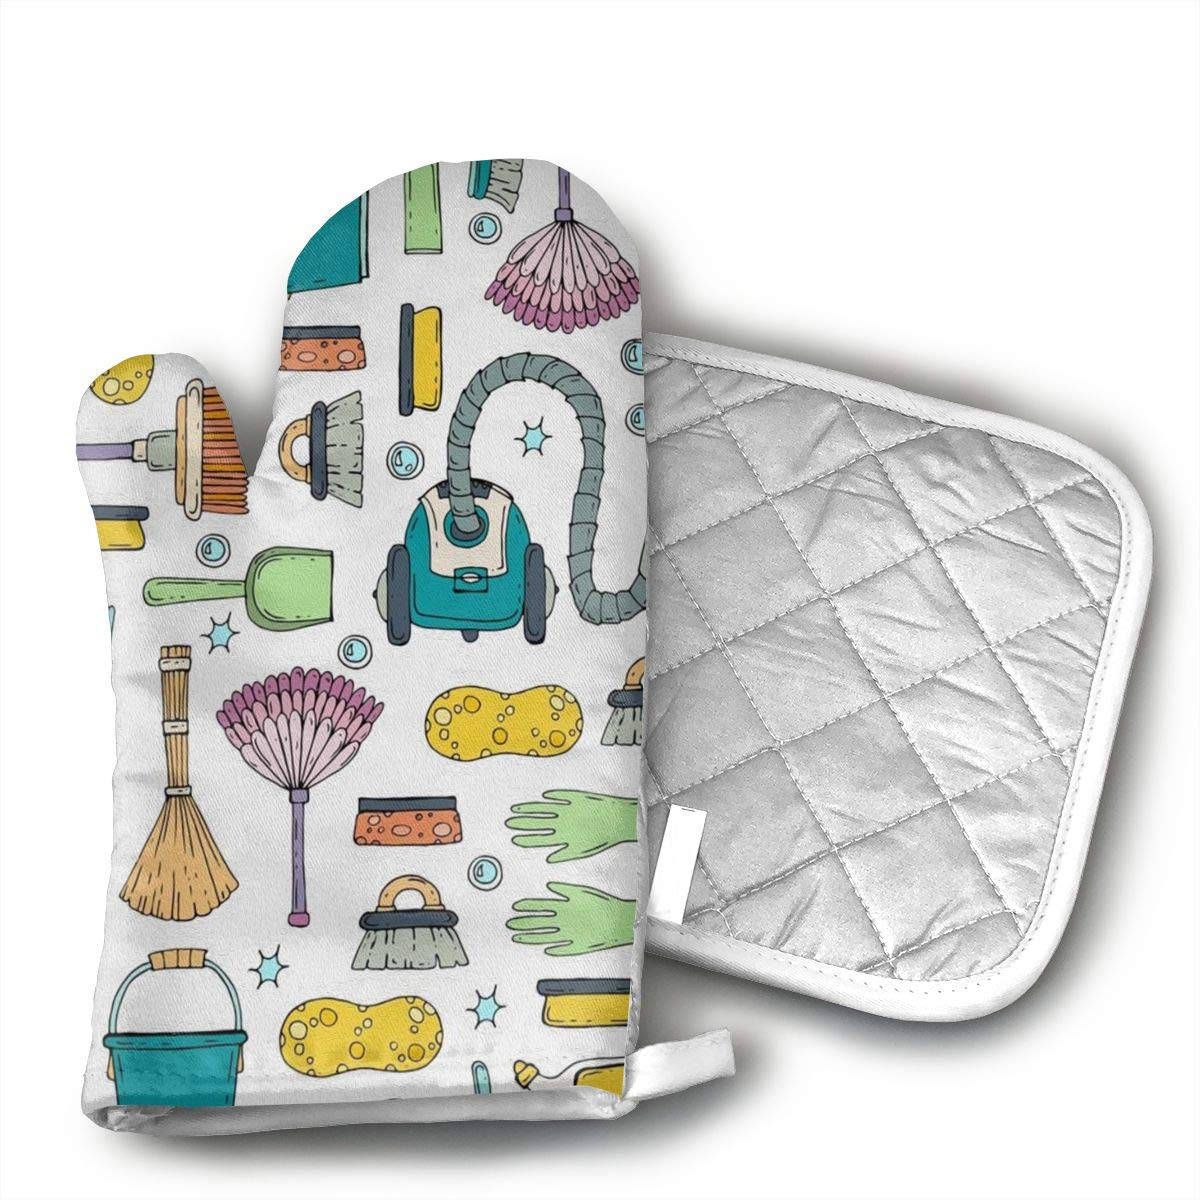 Star Blue Design Vacuum Cleaner Pattern Oven Mitts & Heat Resistant Pot Holder - with Polyester Cotton Non-Slip Grip, Best Used As Baking, Grilling, BBQ, Cooking, Kitchen Or Oven Gloves